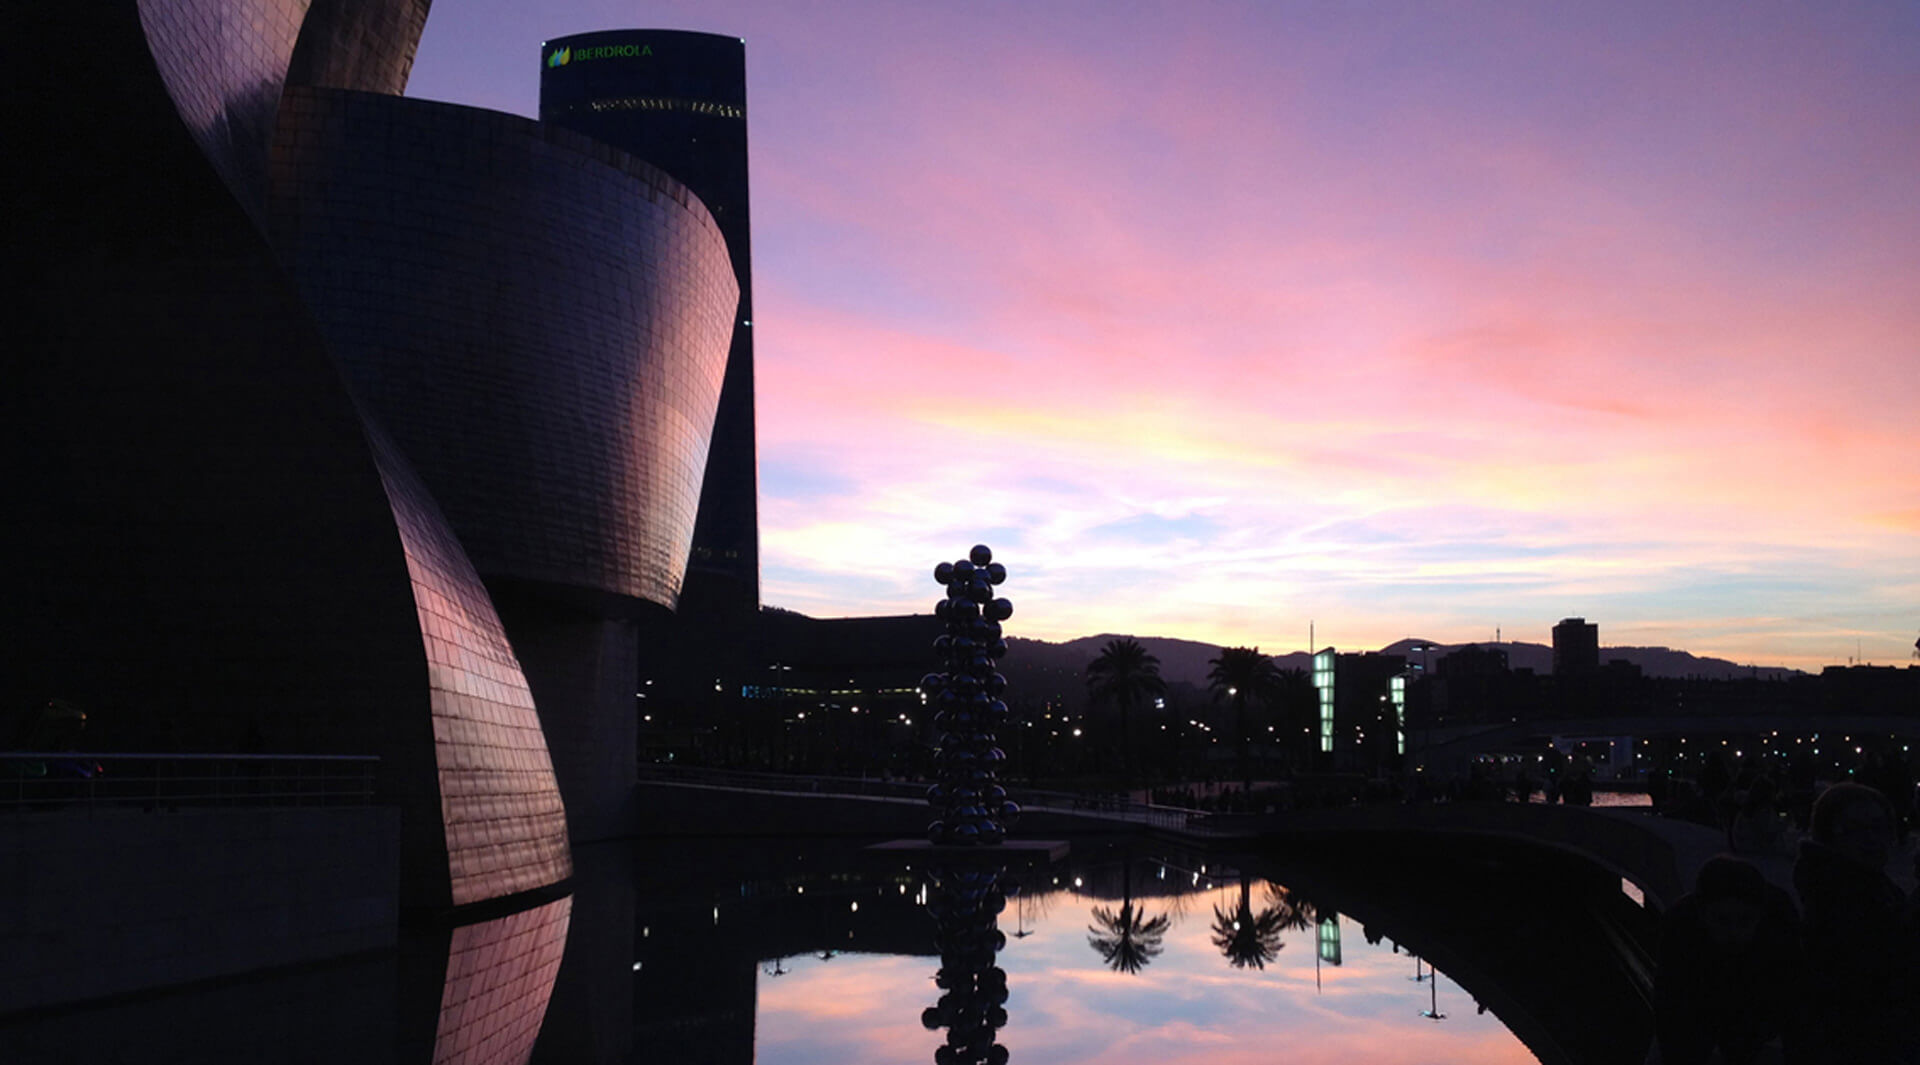 Reflections, light and the Bilbao effect. A trip to merge art and architecture.